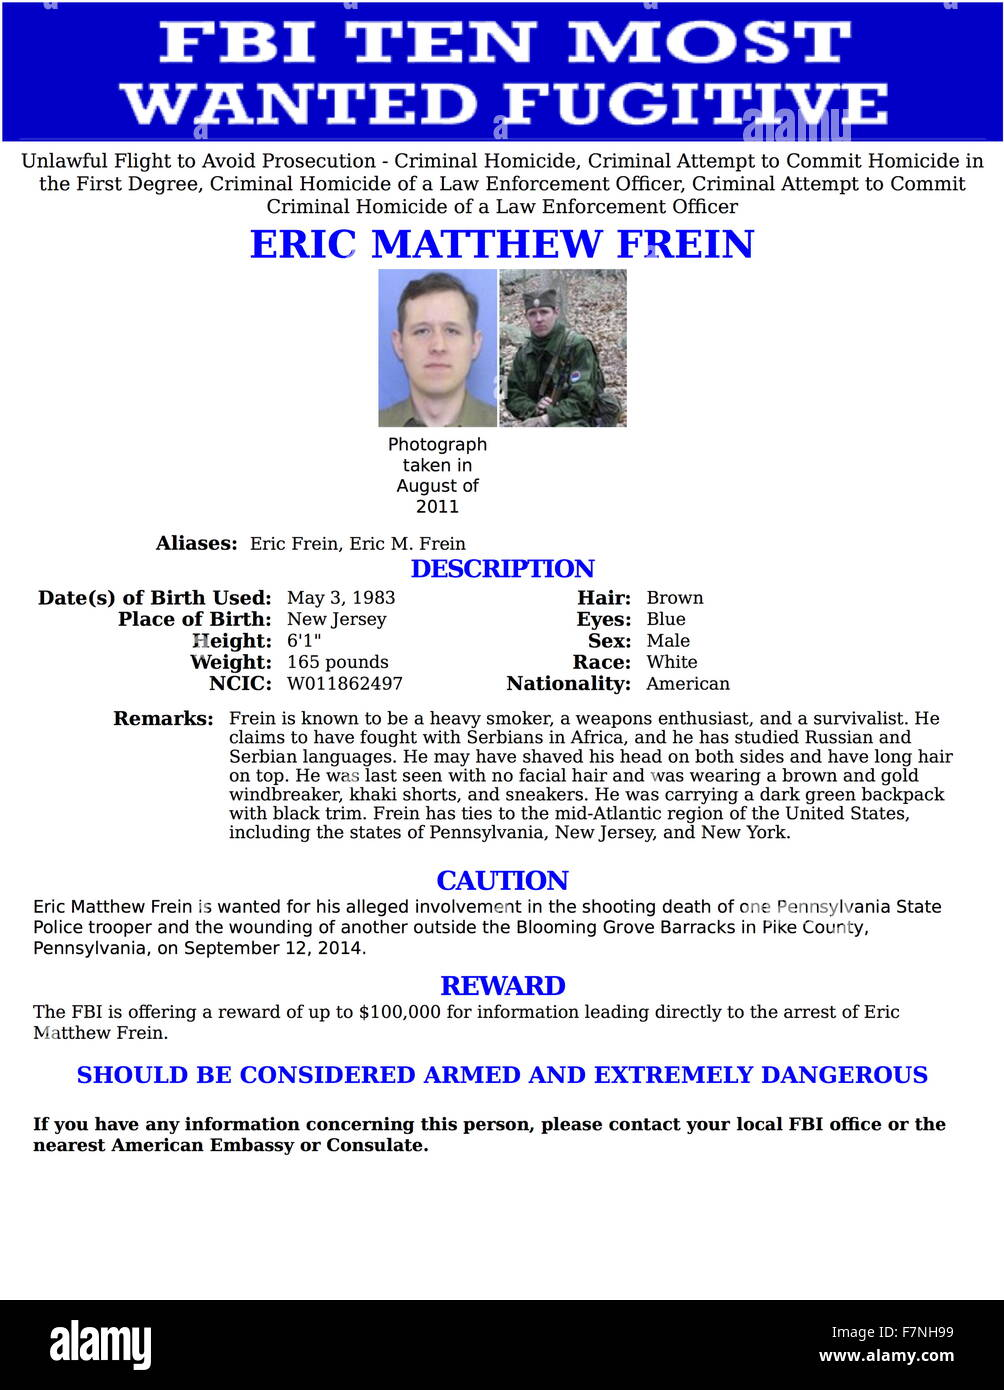 Top Ten Most Wanted notice issued by the FBI for Eric Matthew Frein (1983-) wanted for his alleged involvement in - Stock Image